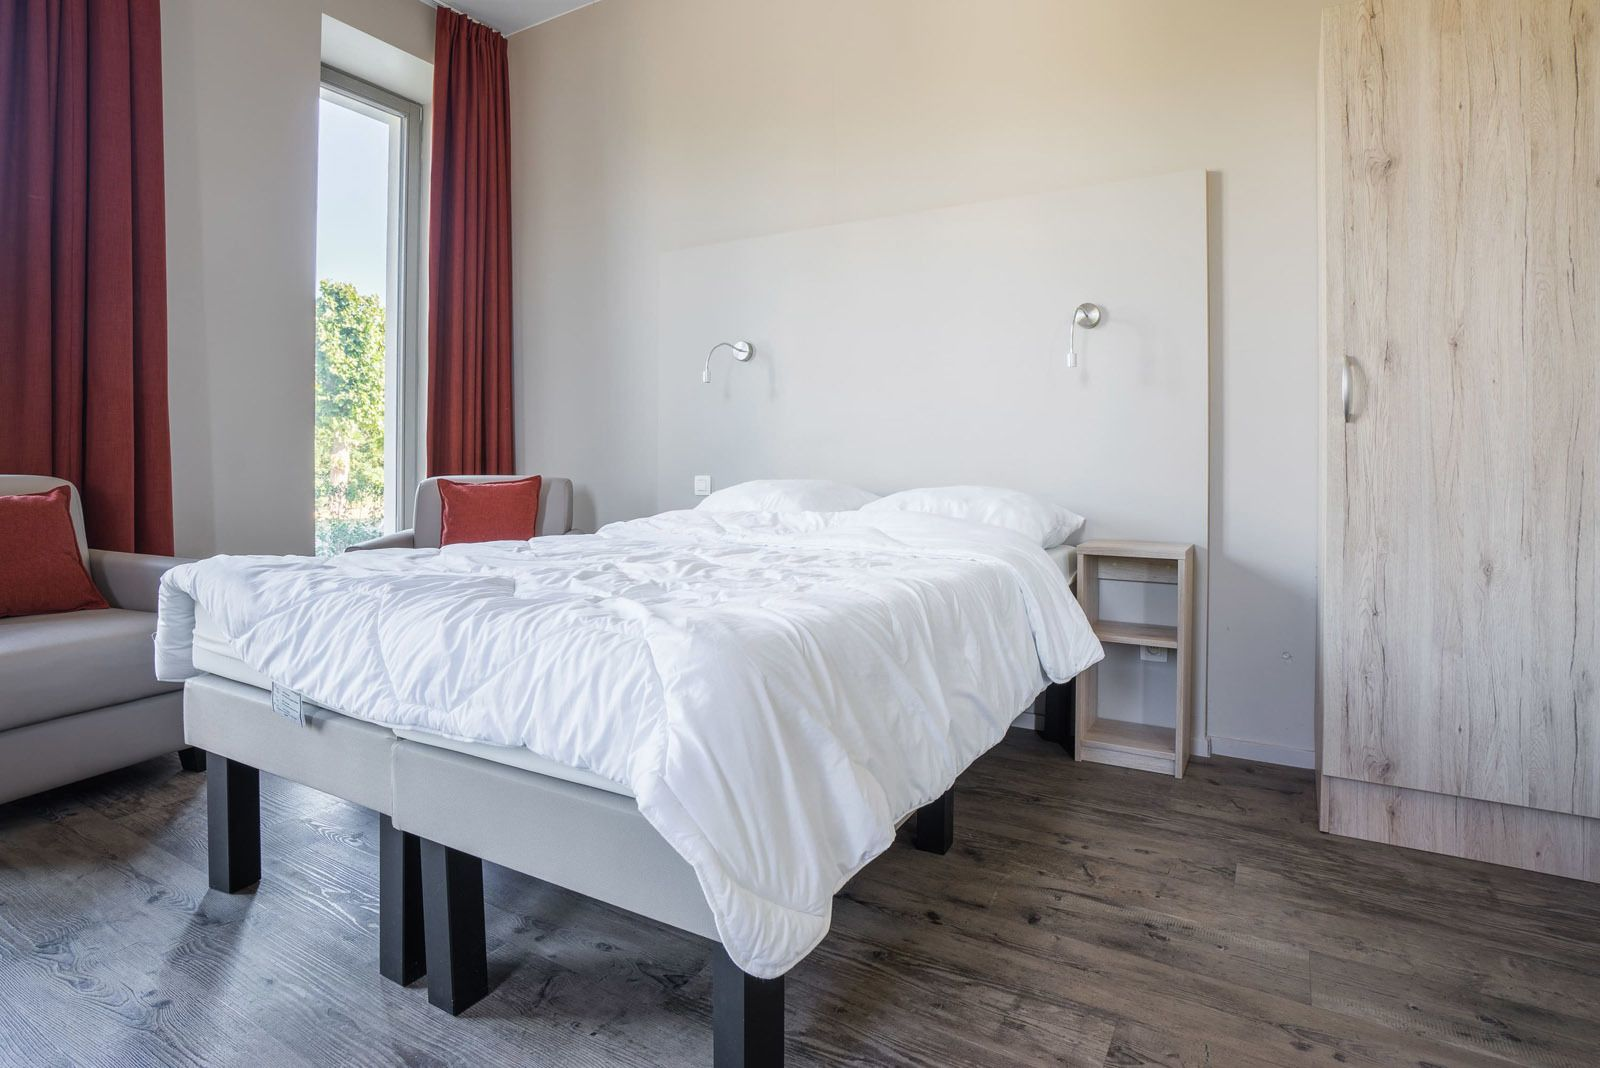 Holiday Suite for 2 people, accessible for people with a disability